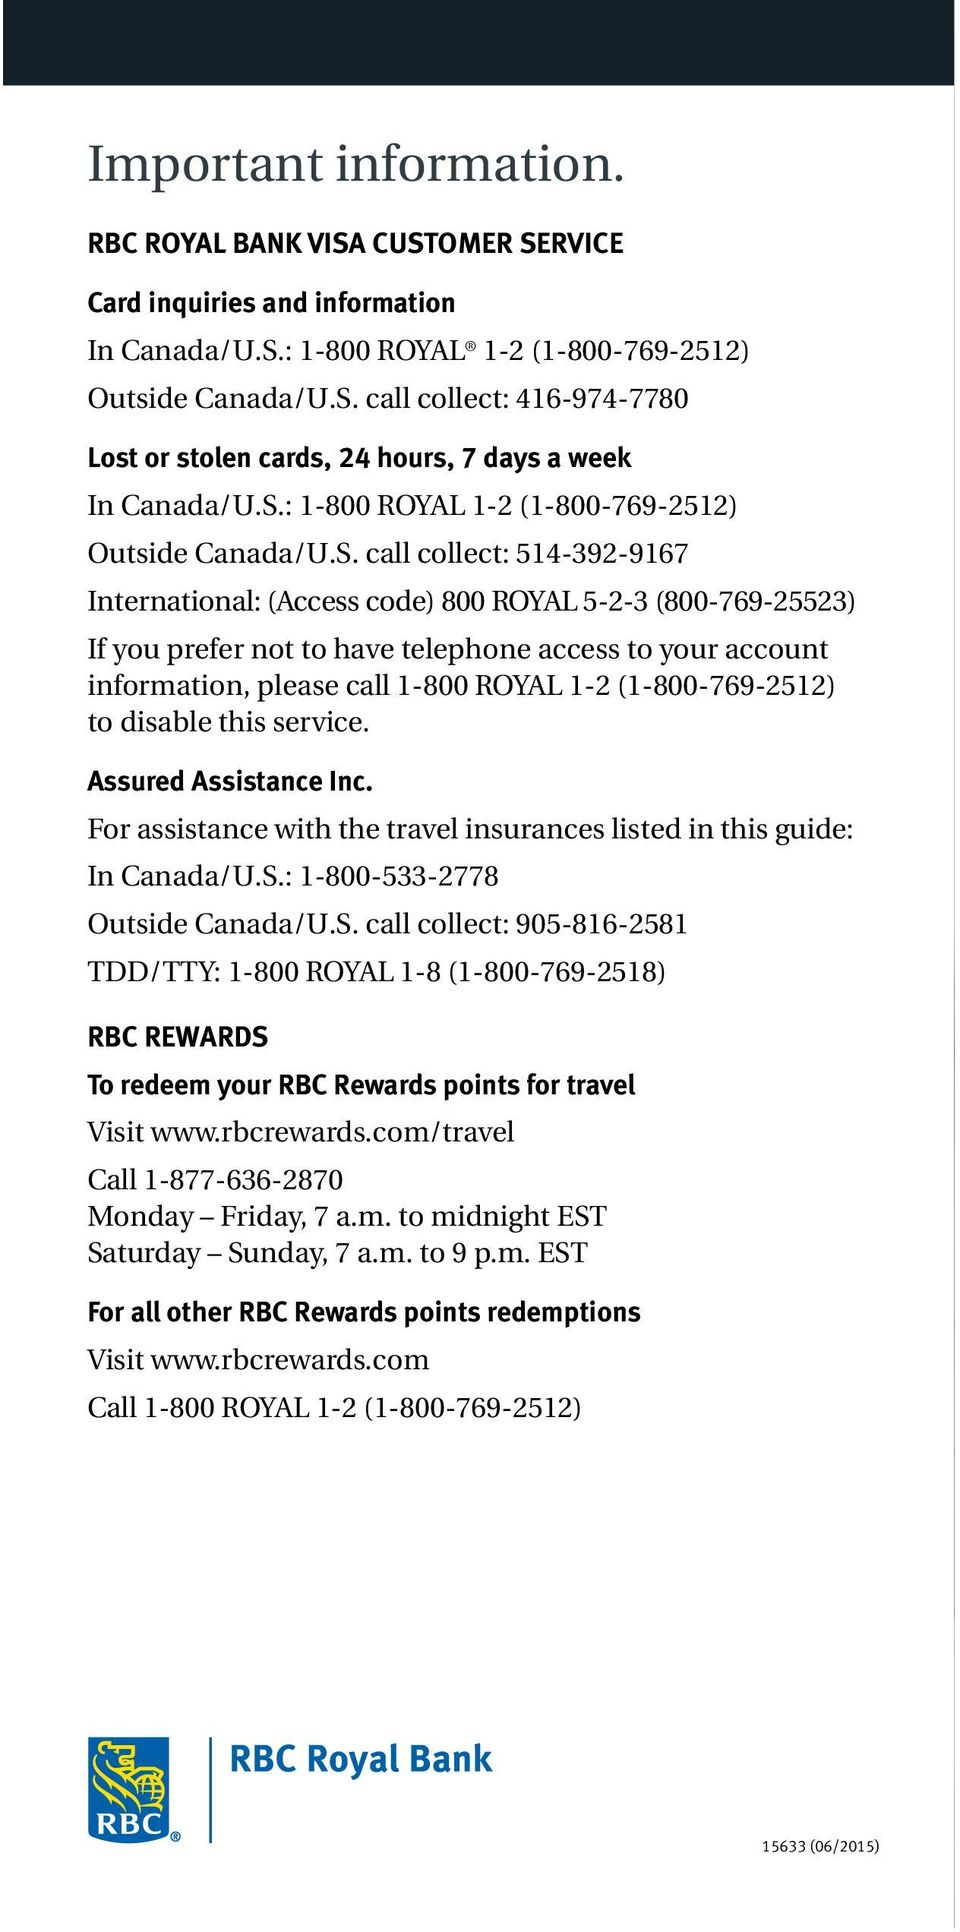 account information, please call 1-800 ROYAL 1-2 (1-800-769-2512) to disable this service. Assured Assistance Inc. For assistance with the travel insurances listed in this guide: In Canada/U.S.